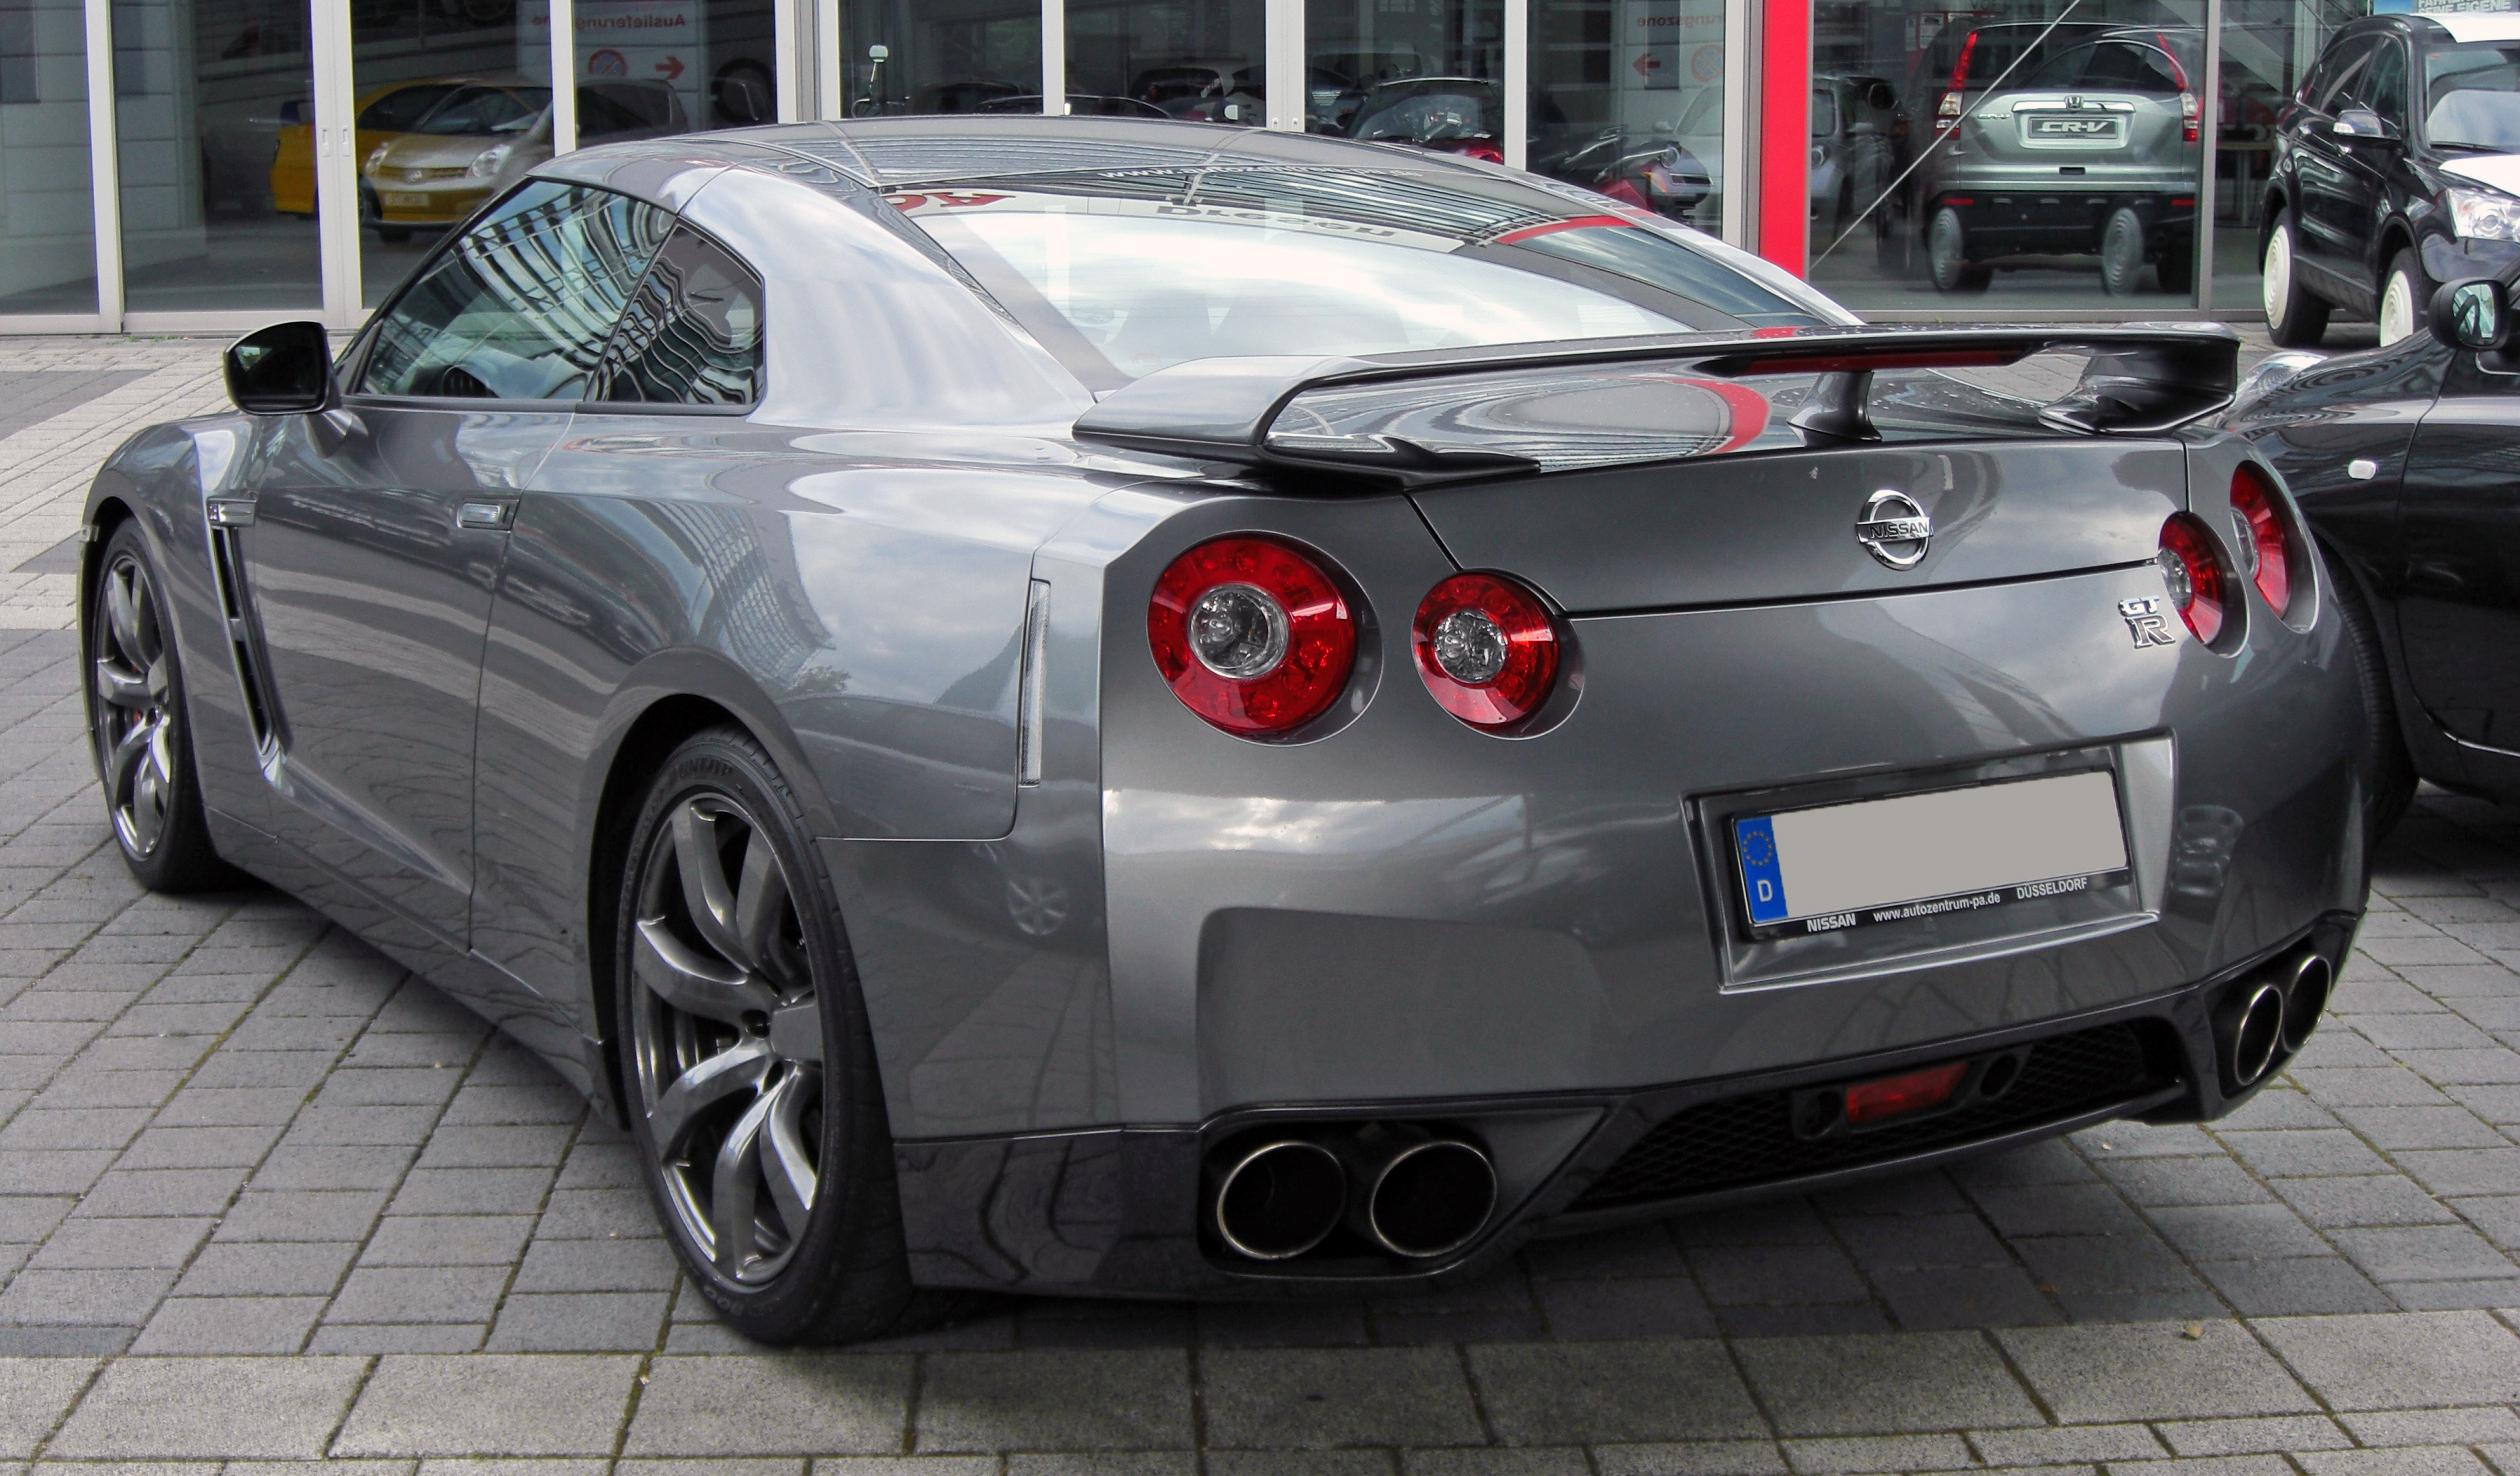 Exceptional Nissan Skyline Gtr R35 2014 Price Hd Image